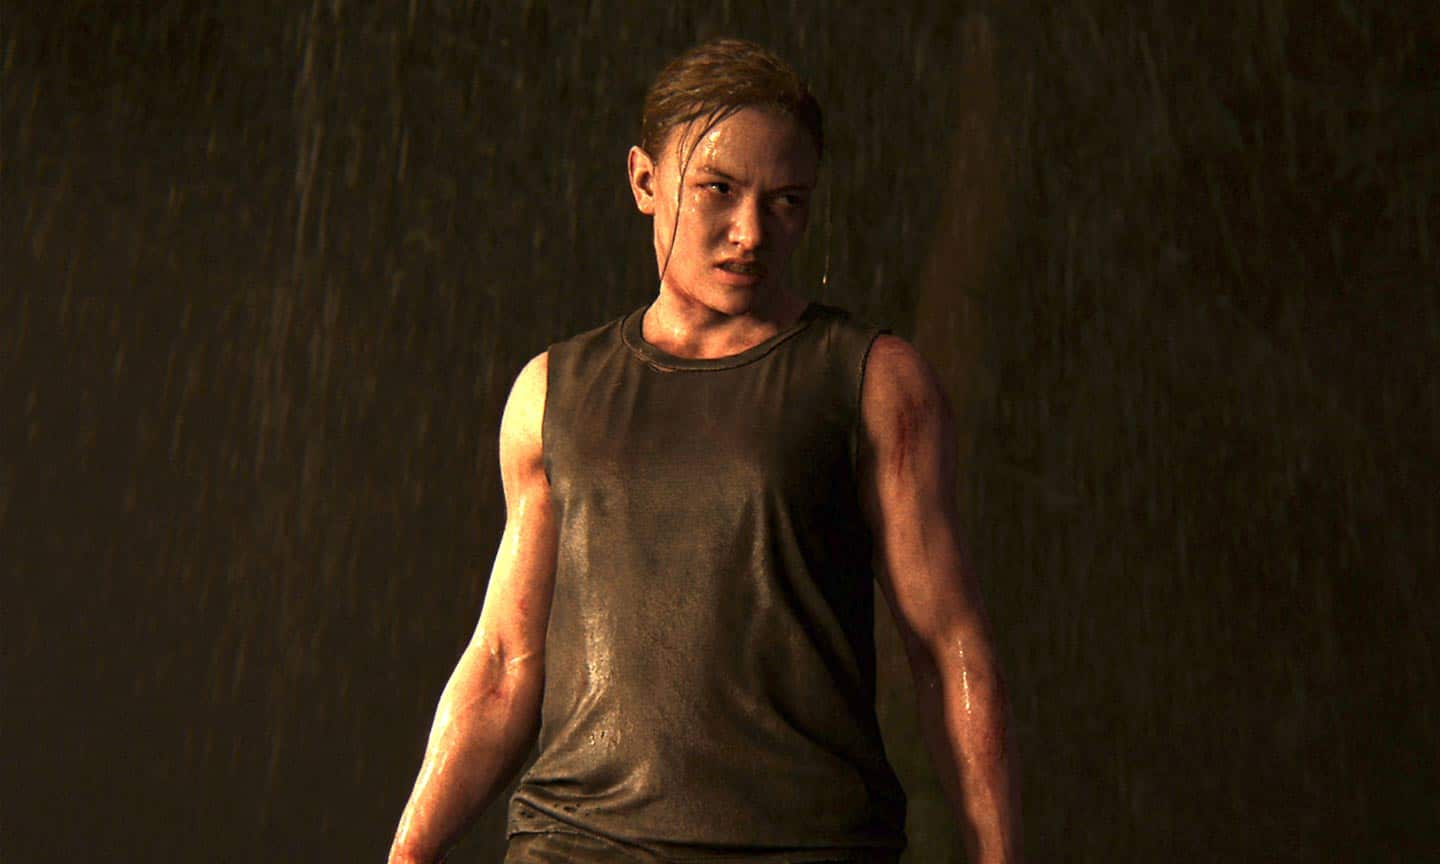 Abby in The Last of Us 2 - (C) Naughty Dog